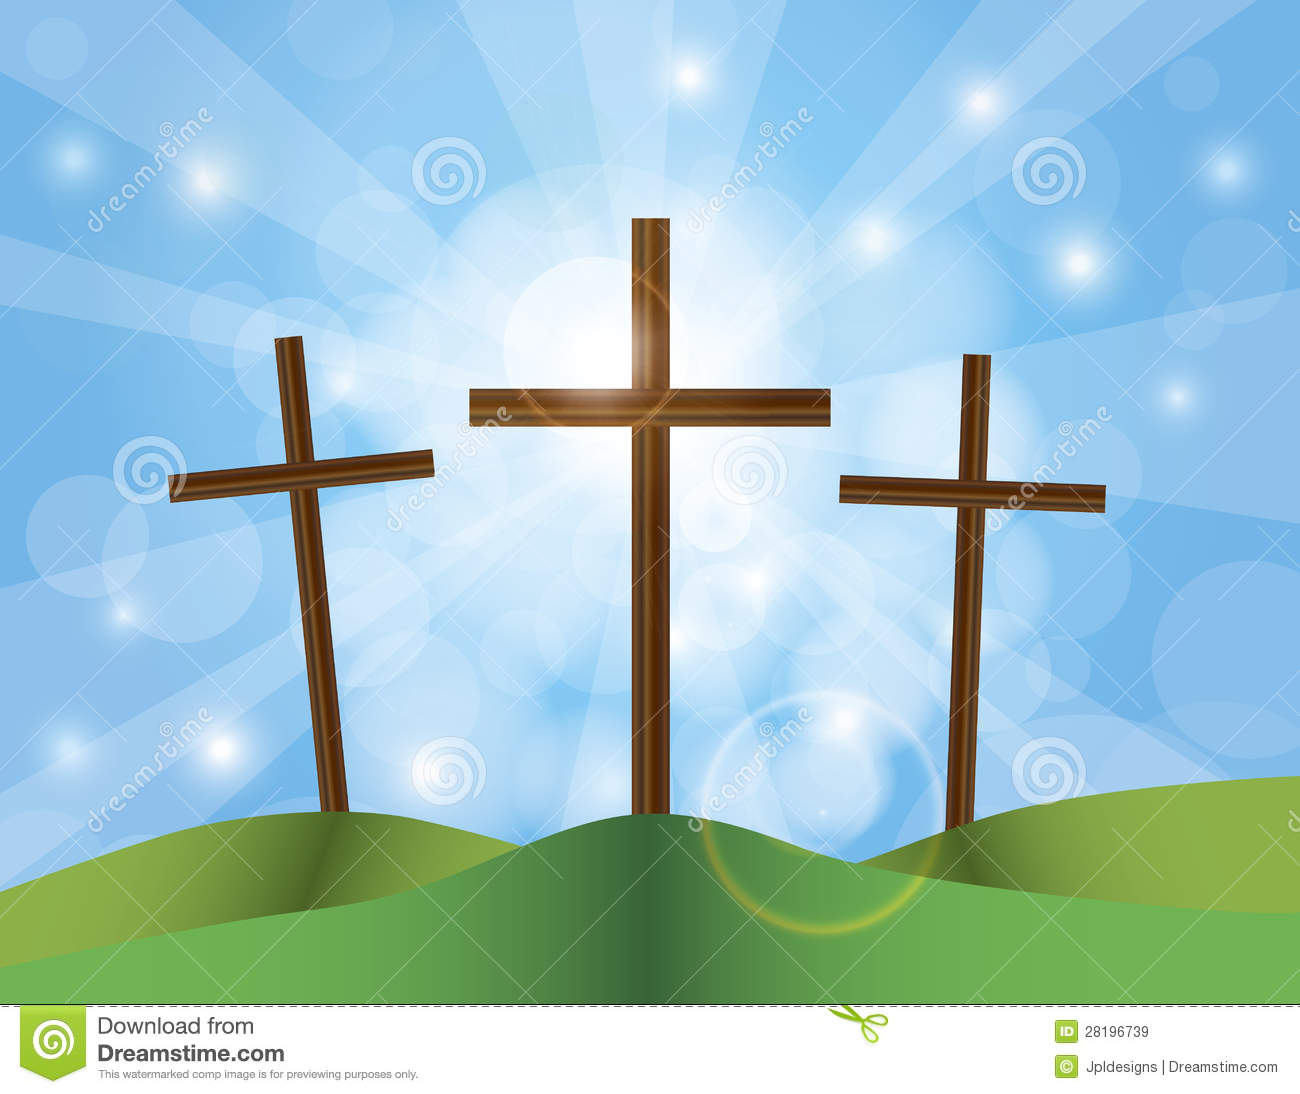 Free Stock Images  Easter Good Friday Crosses on Blue Sky BackgroundEaster Cross Background